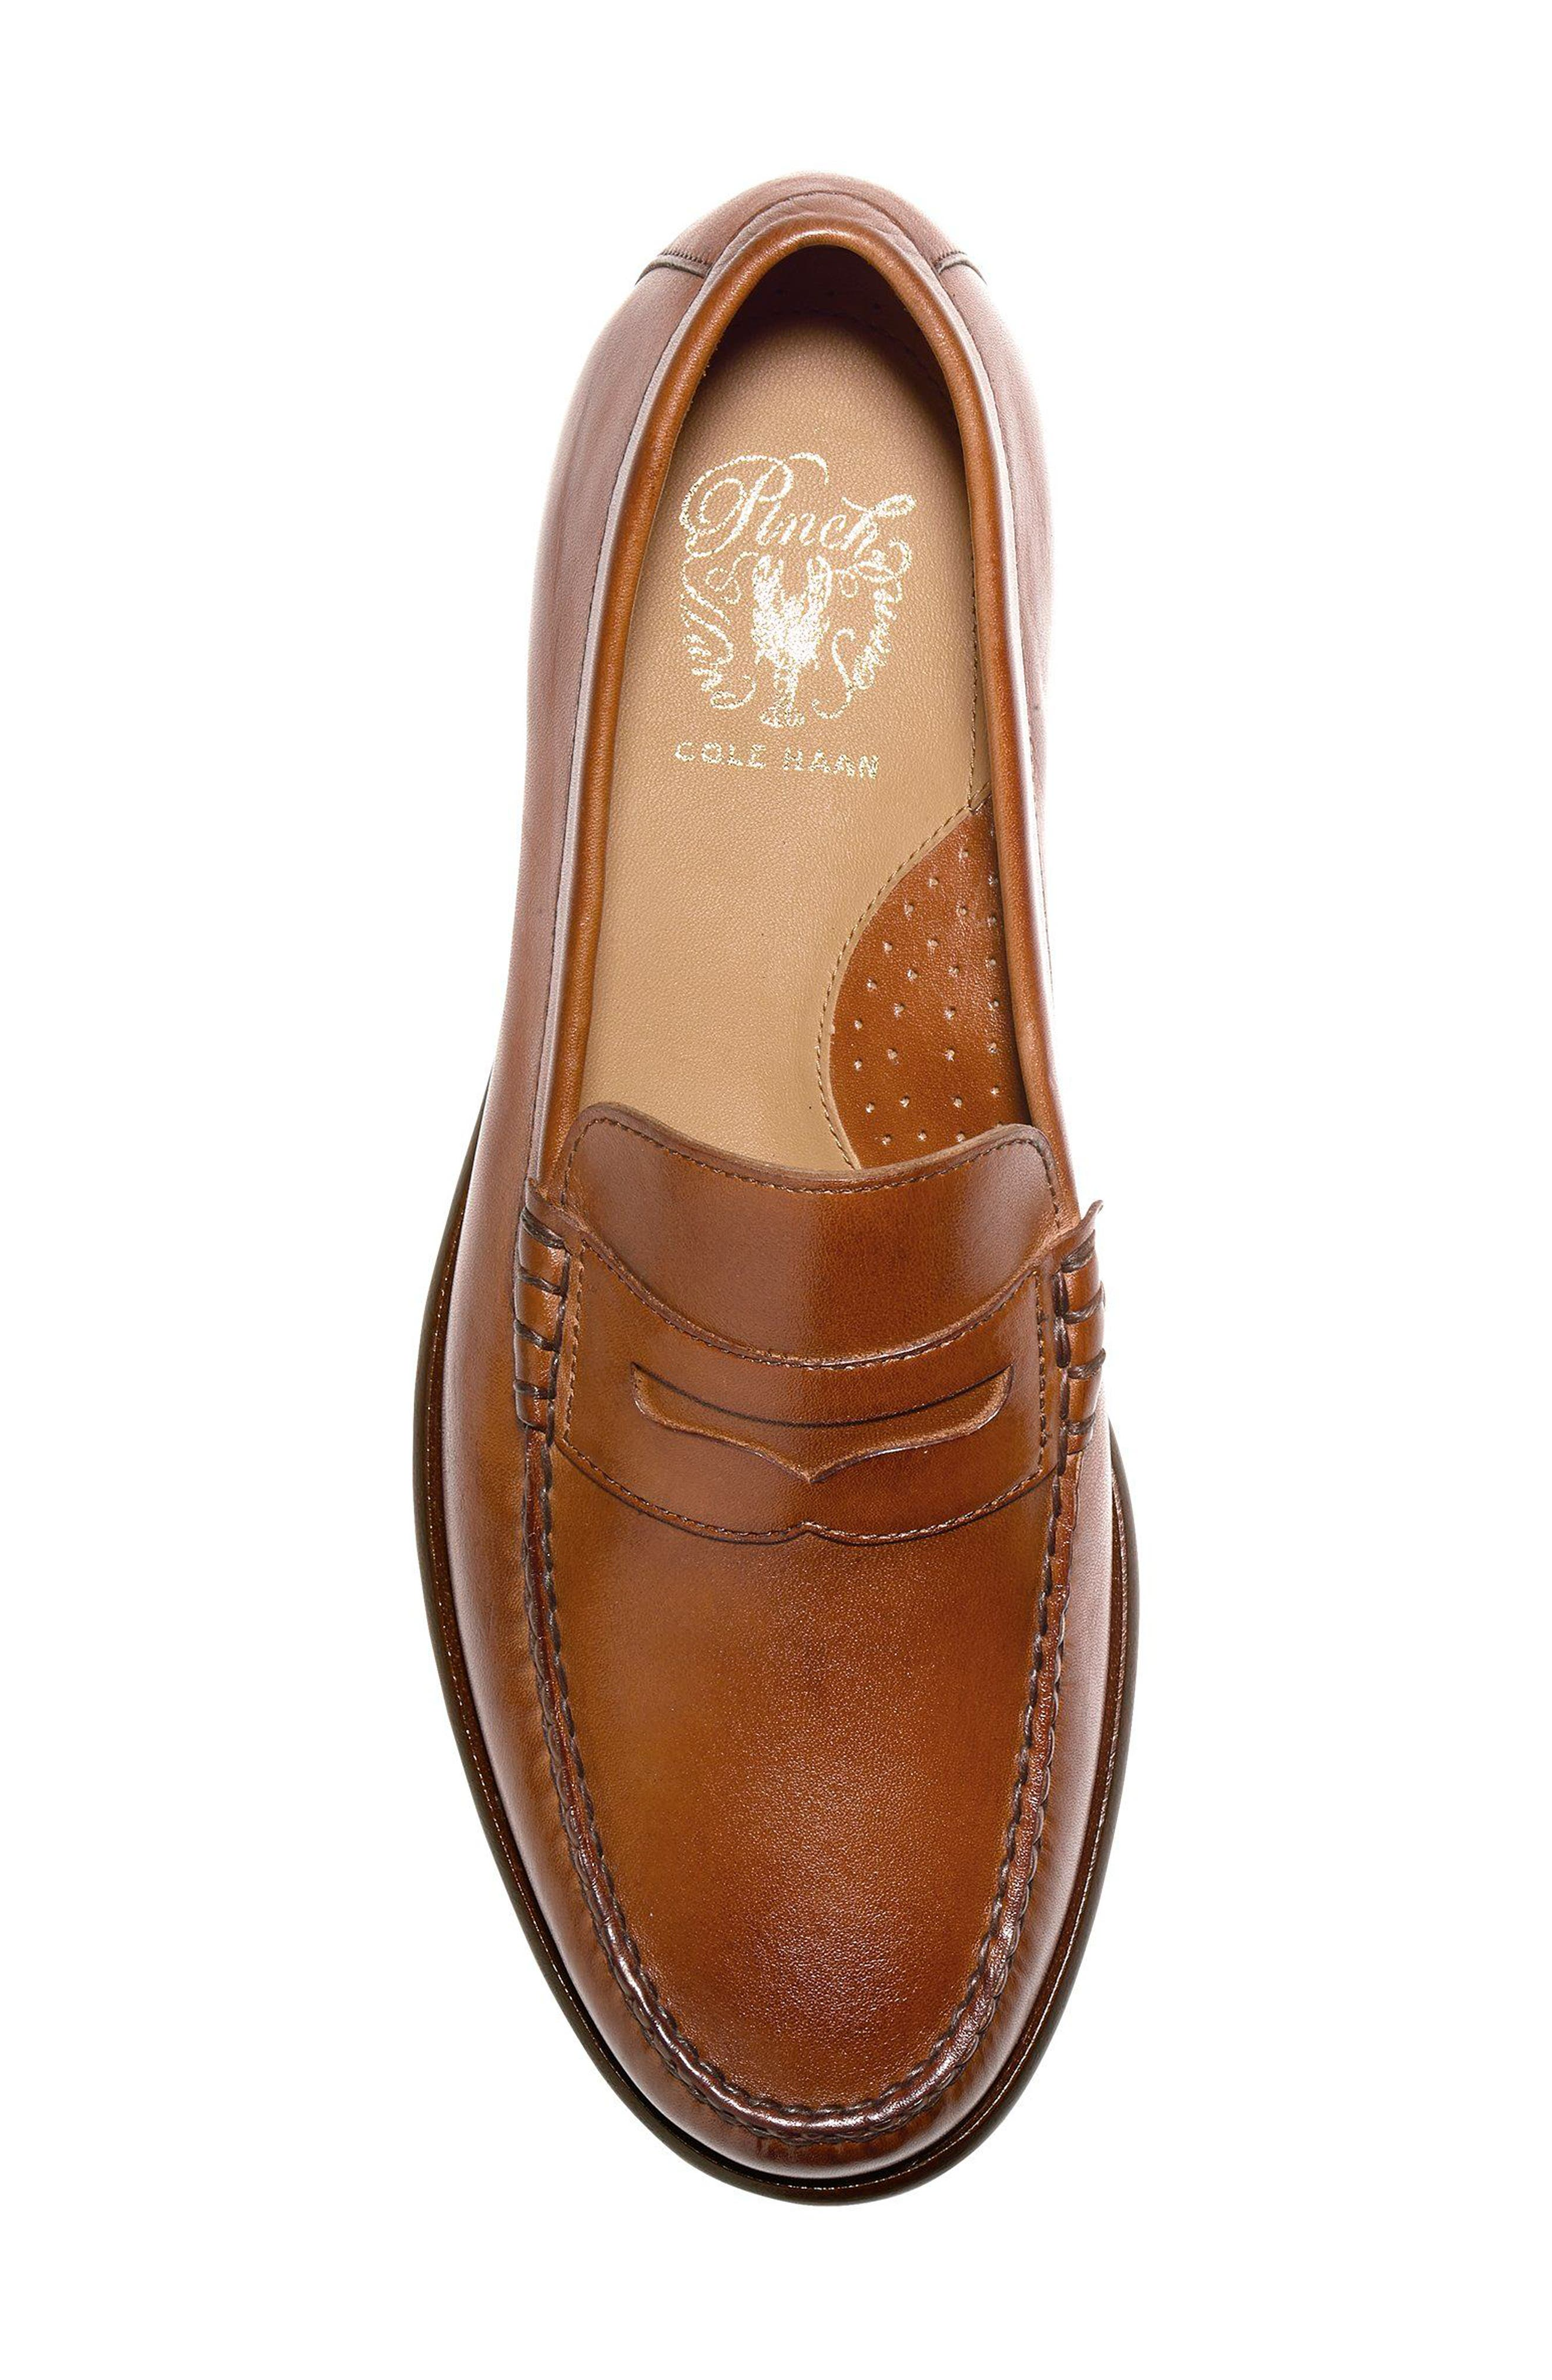 Pinch Penny Loafer,                             Alternate thumbnail 5, color,                             British Tan Leather